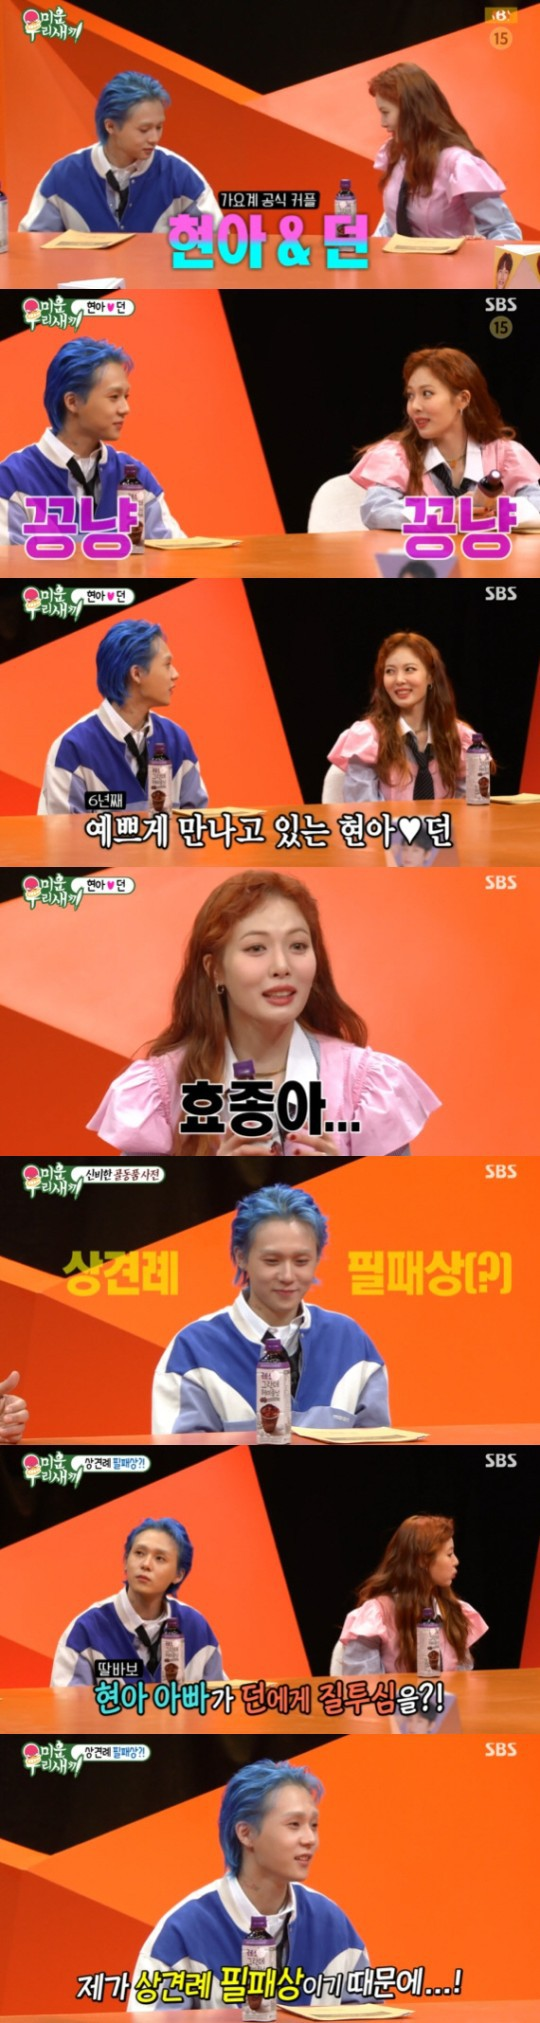 """It takes a long time to get my parents' permission"" from HyunA and DAWN...'6 years dating' (My Little Old Boy)"